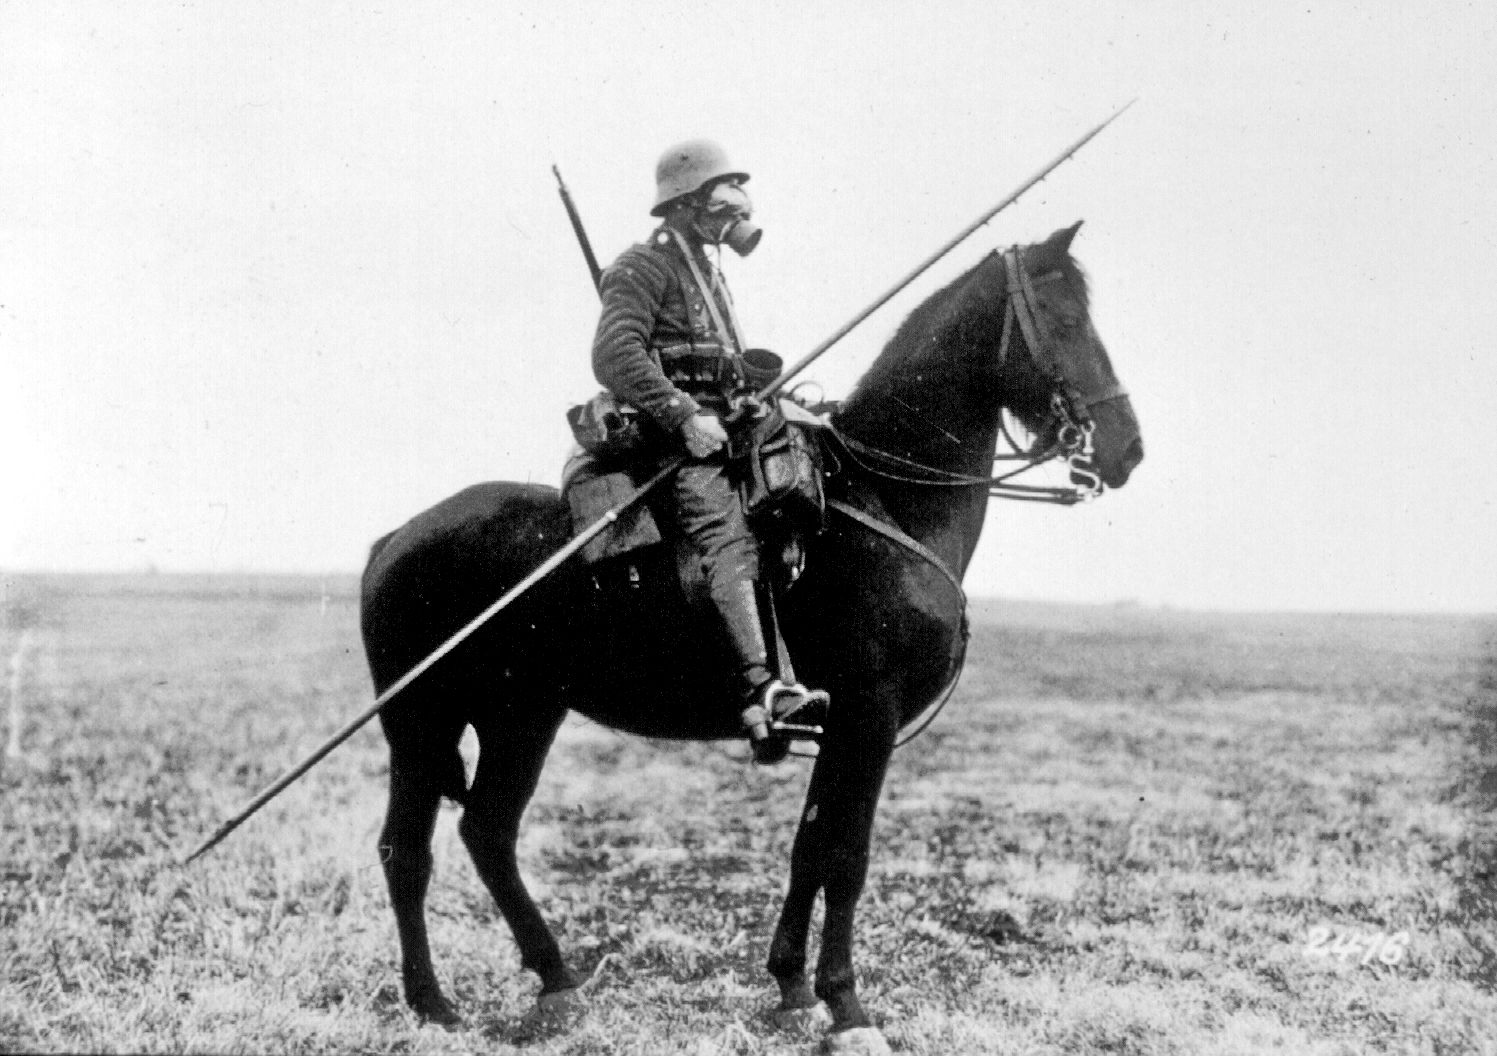 german soldier with a gas mask and a spear riding horse